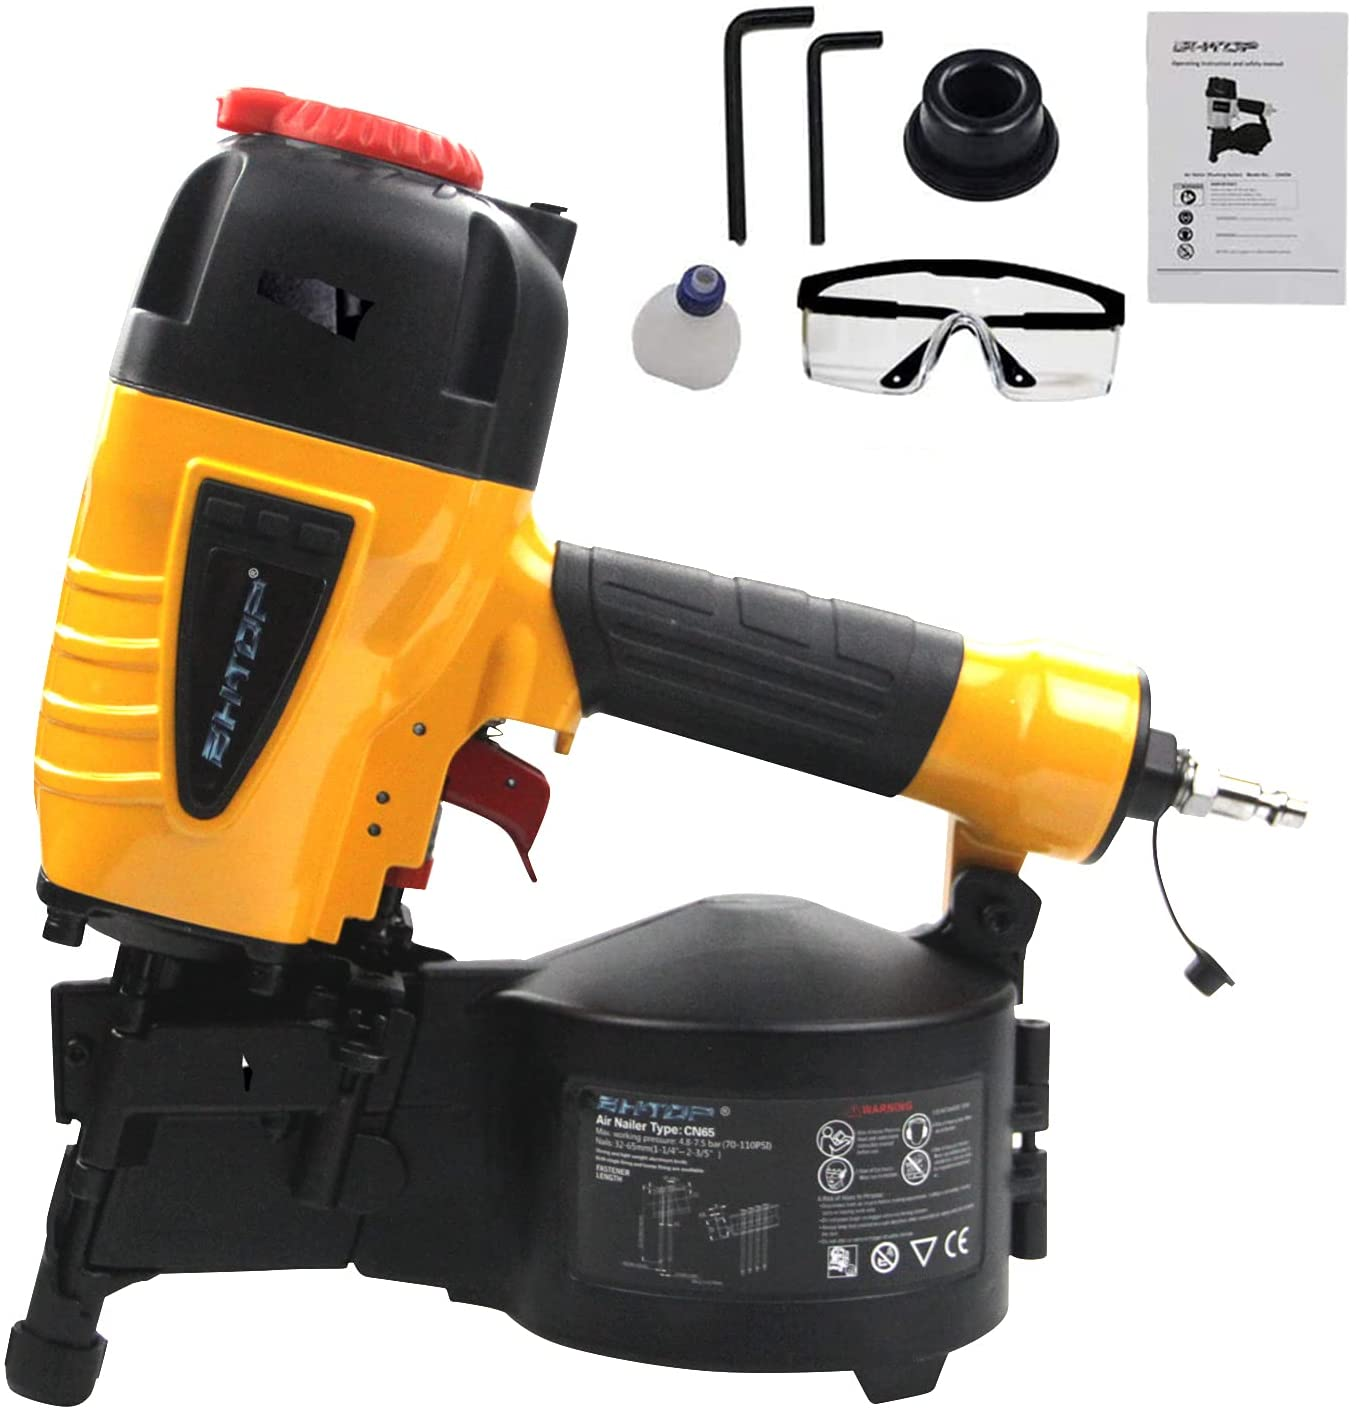 BHTOP 15-Degree Coil At the price Siding Fencing Nailer 2-1 1 2-I to 4-inch At the price